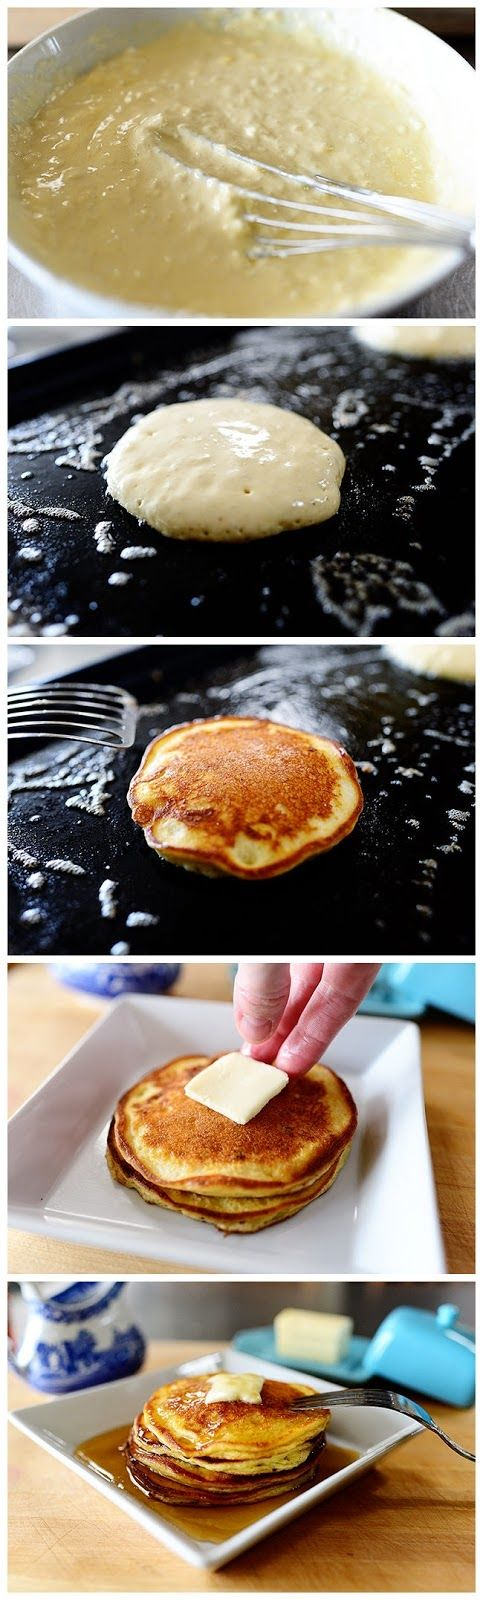 Edna Mae's Sour Cream Pancakes | Food Blog. Sub the sugar with ...